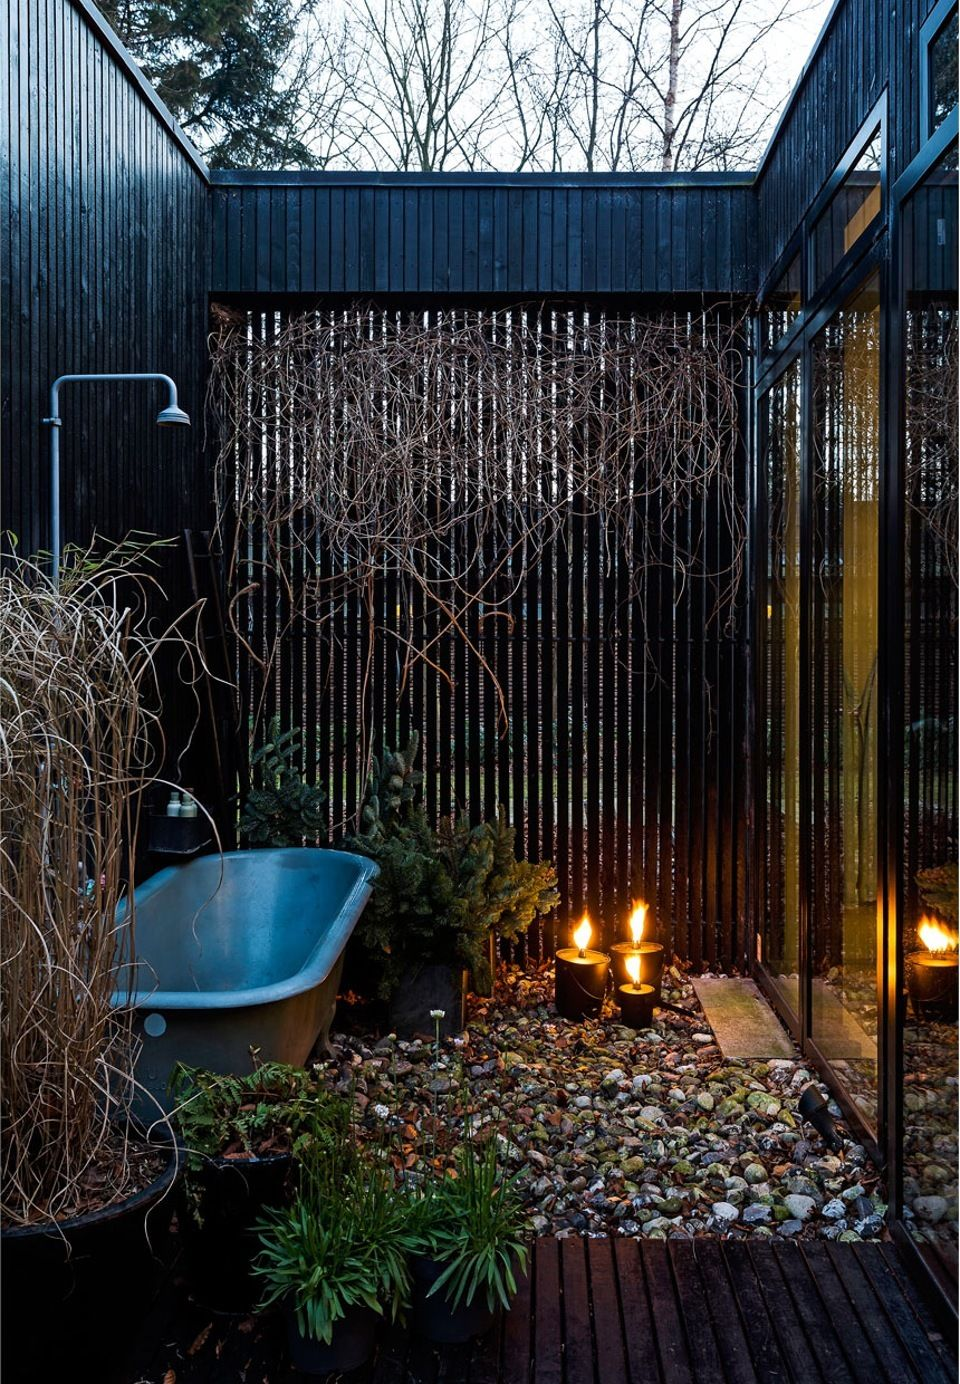 summer house with a rustic and cosy outdoor bath featuring a